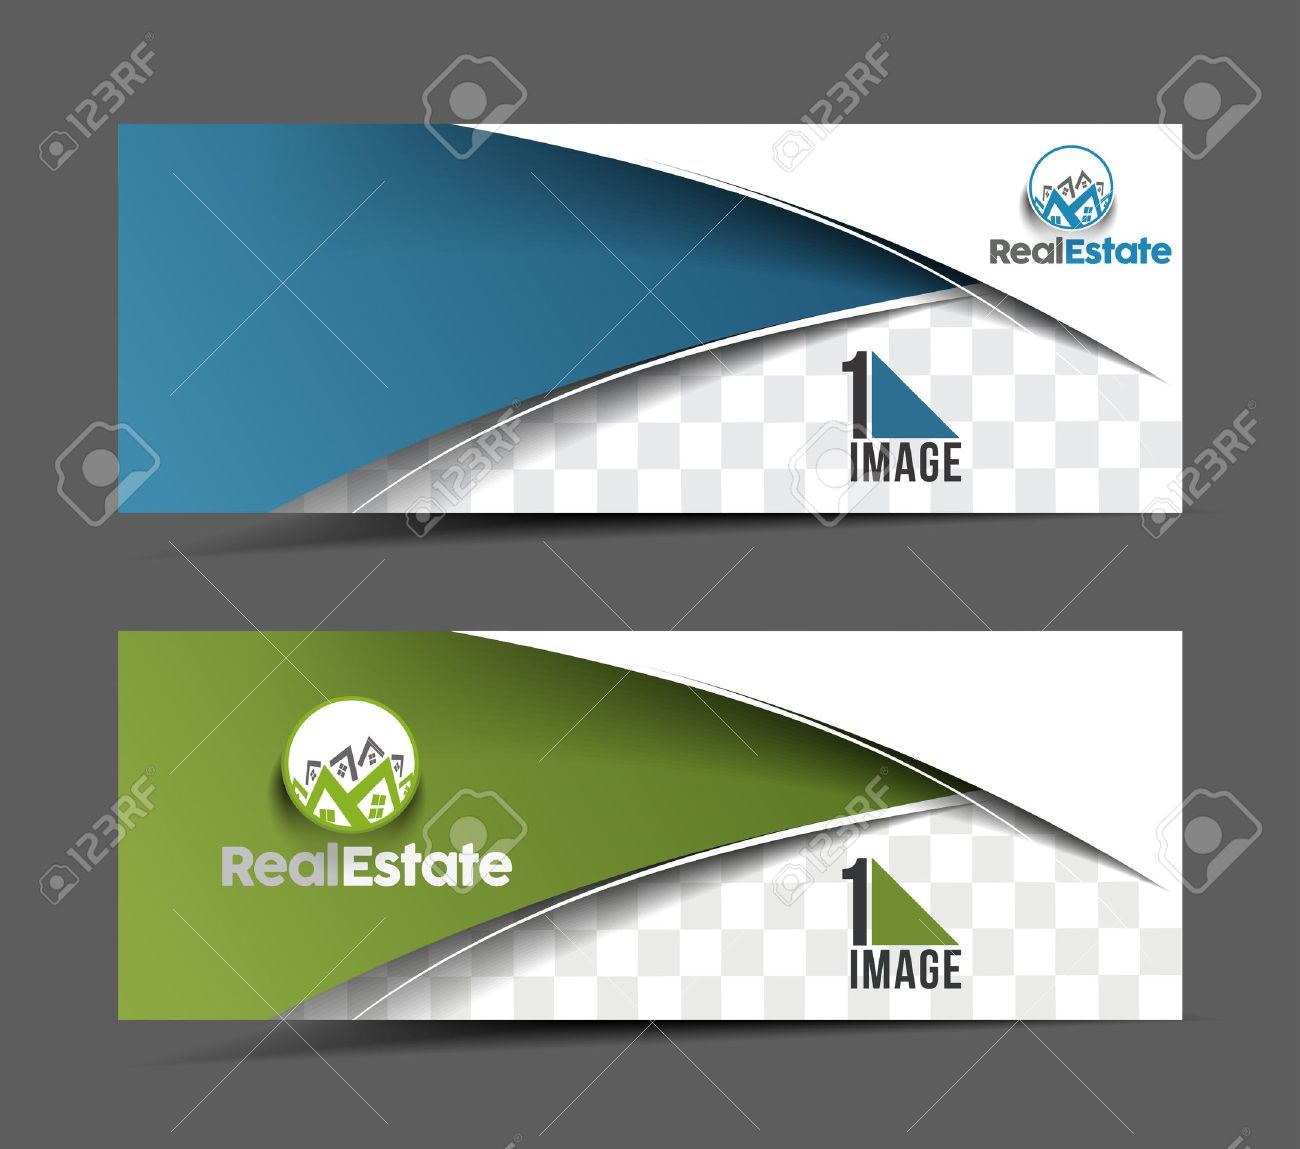 Real estate Business Ad, Web Banner & Header Layout Template - 41833353